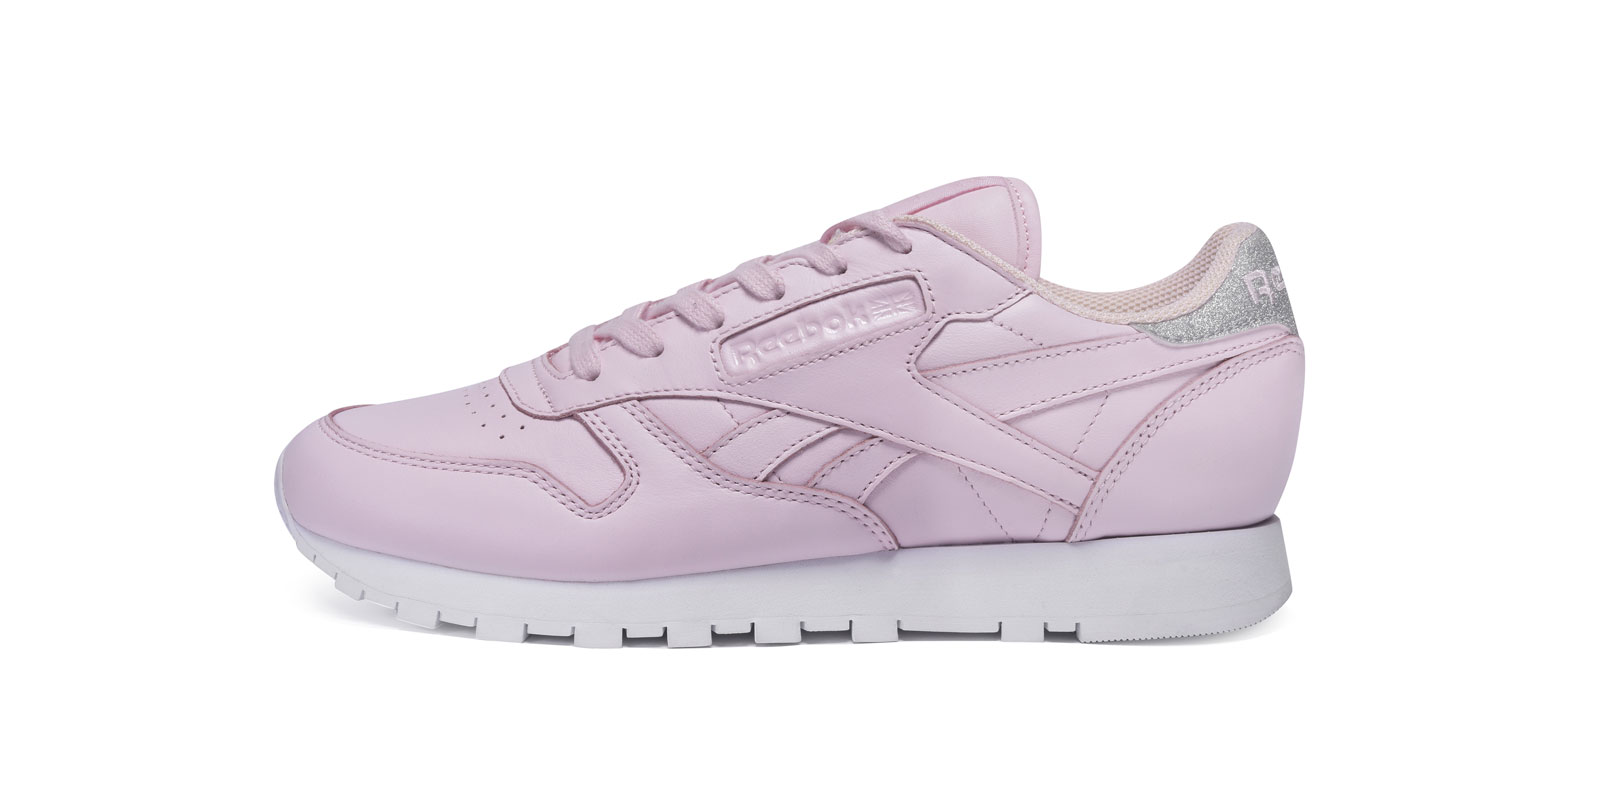 High_1600_800@x3_0002_Reebok-Classic--Leather-Diamond-Porcelain-Pink-Silver